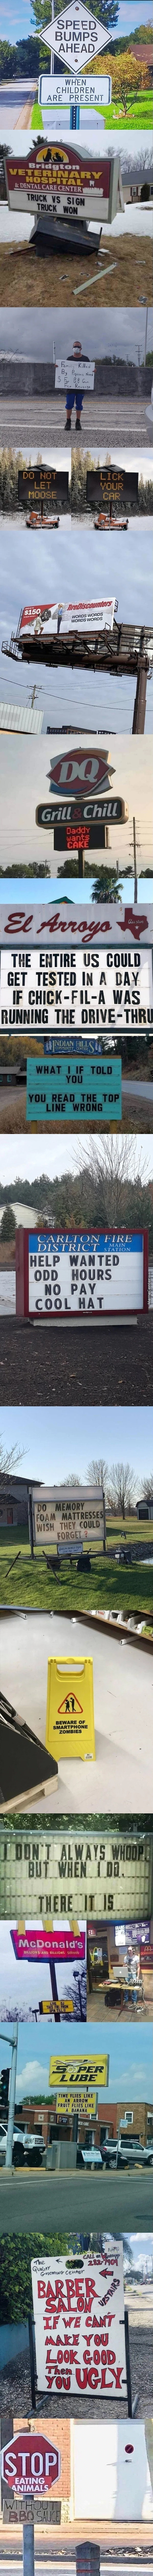 Just A Compilation Of Signs #17